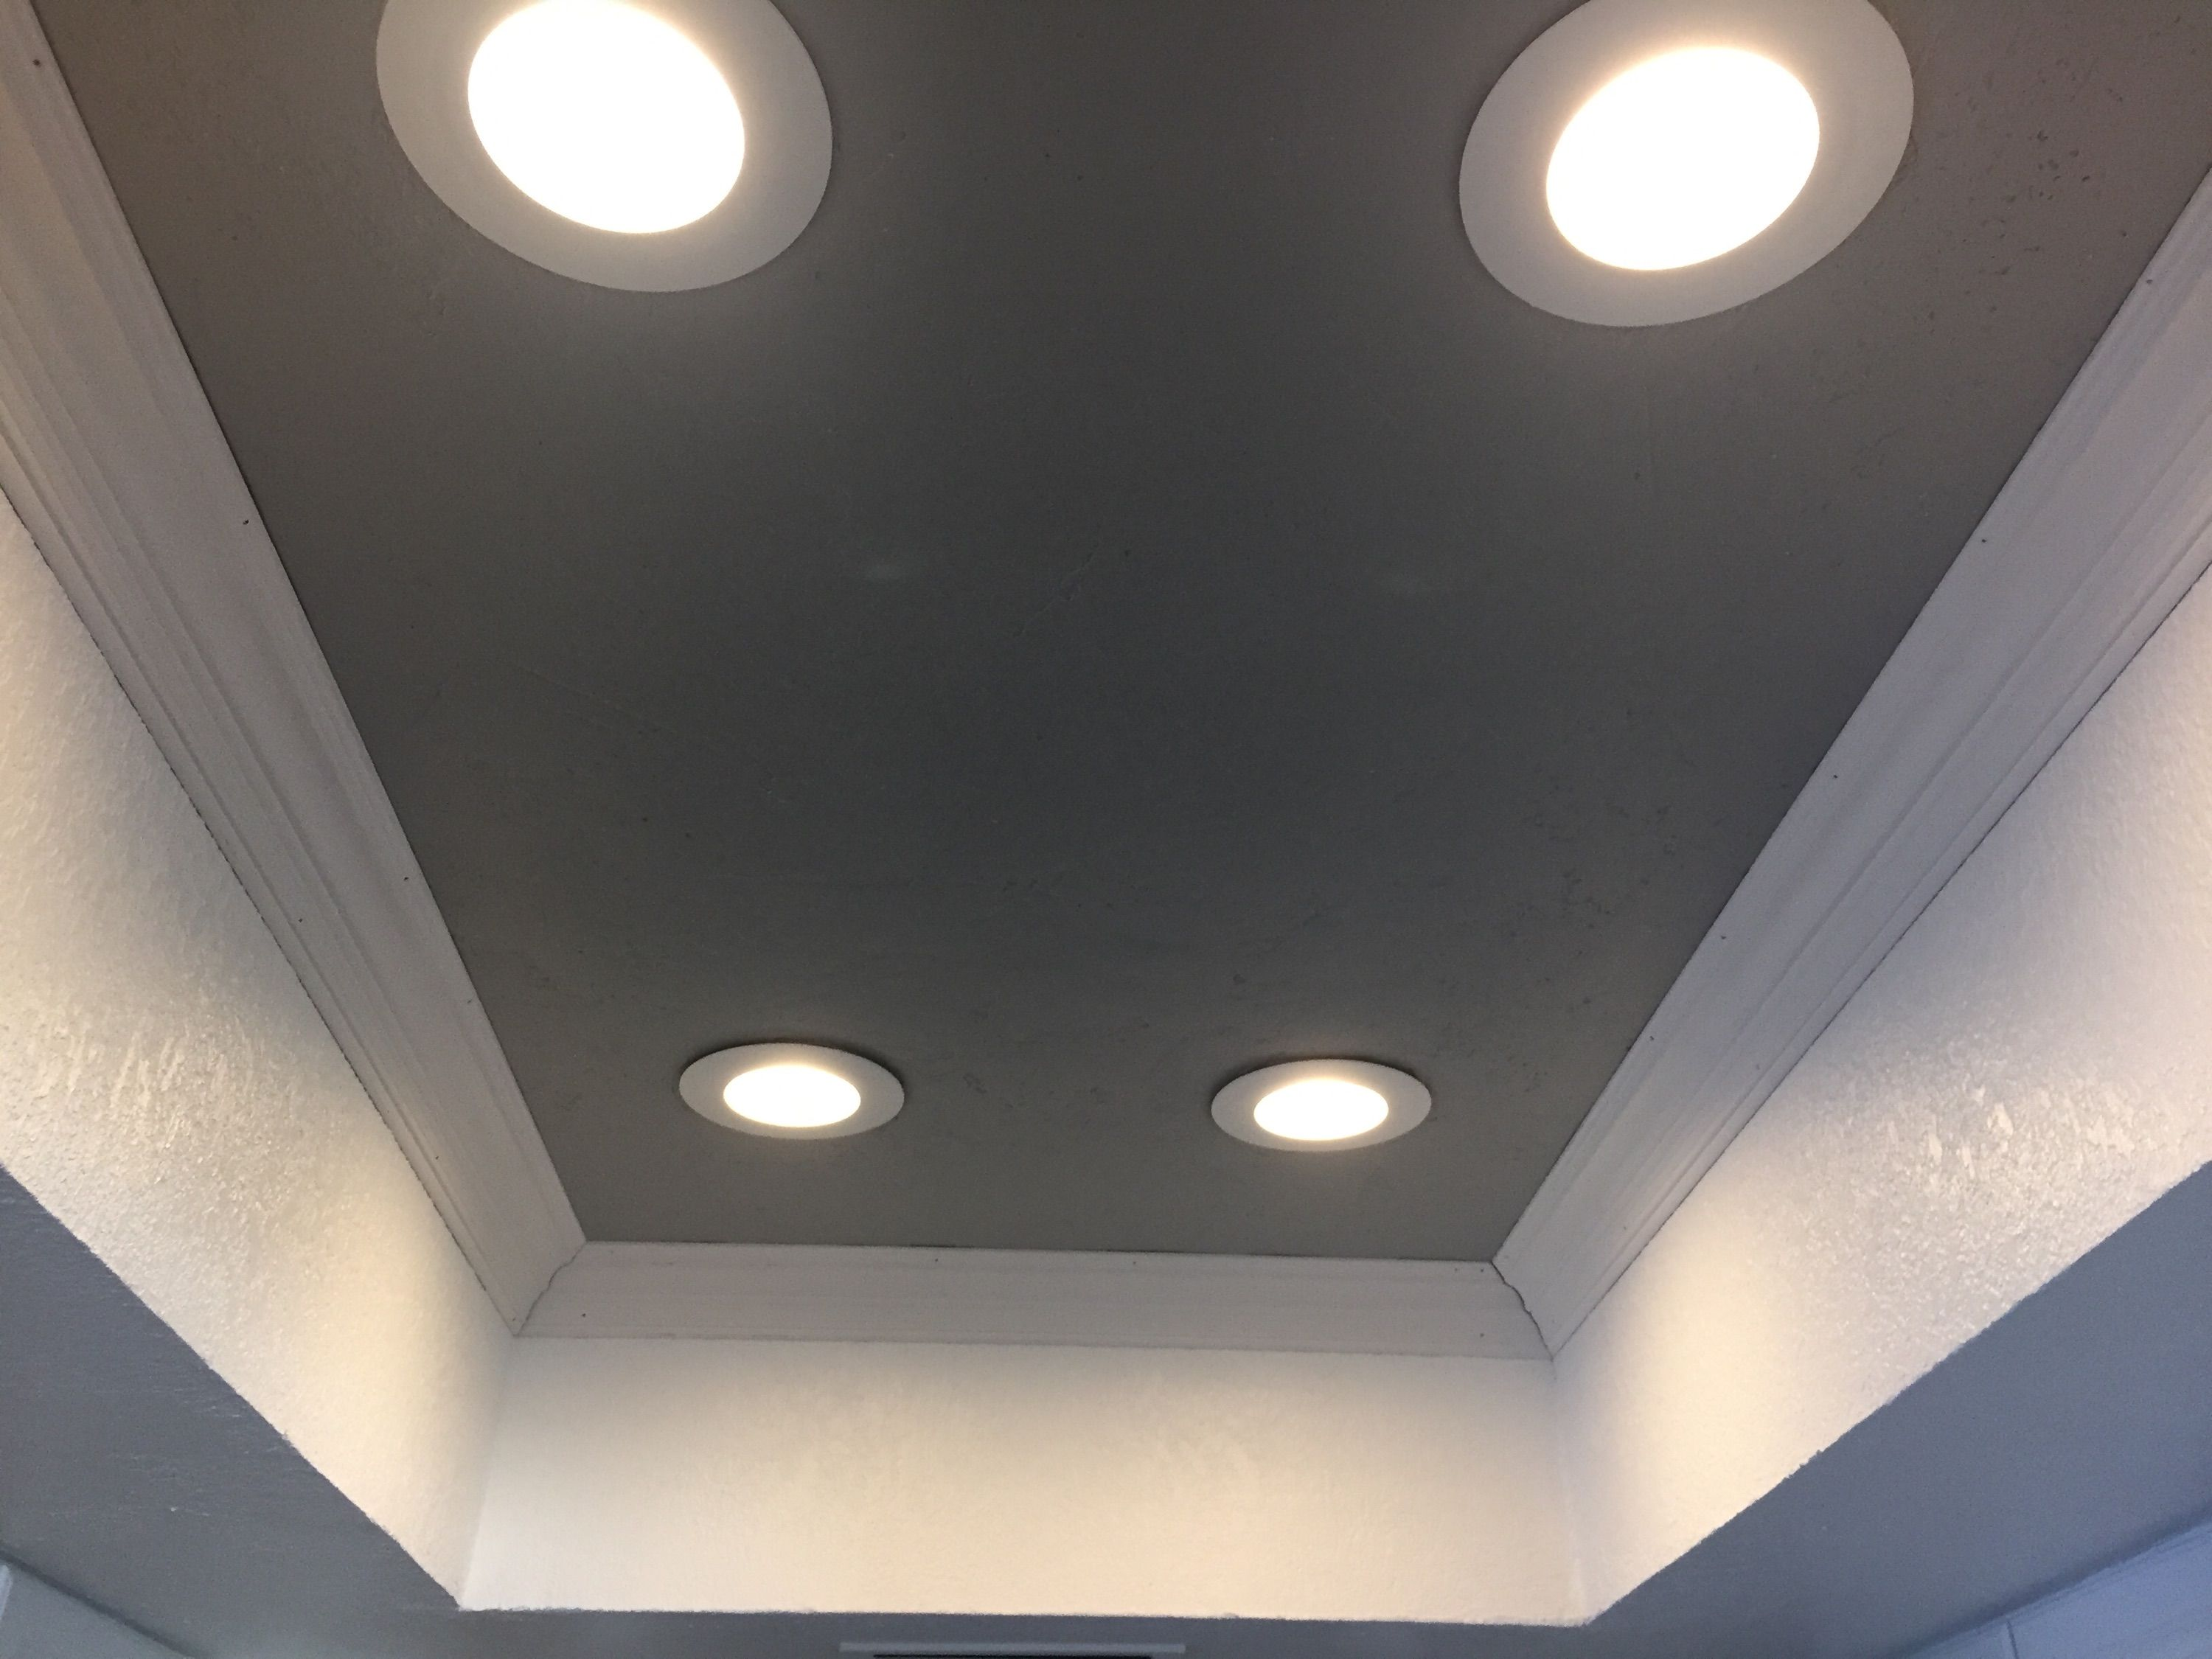 Perfect Led Upgrade For You Fluorescent Lighting Removal Nice 5 Inch Crown Molding Will Your Kitchen To A Modern Style Without Losing Ceiling